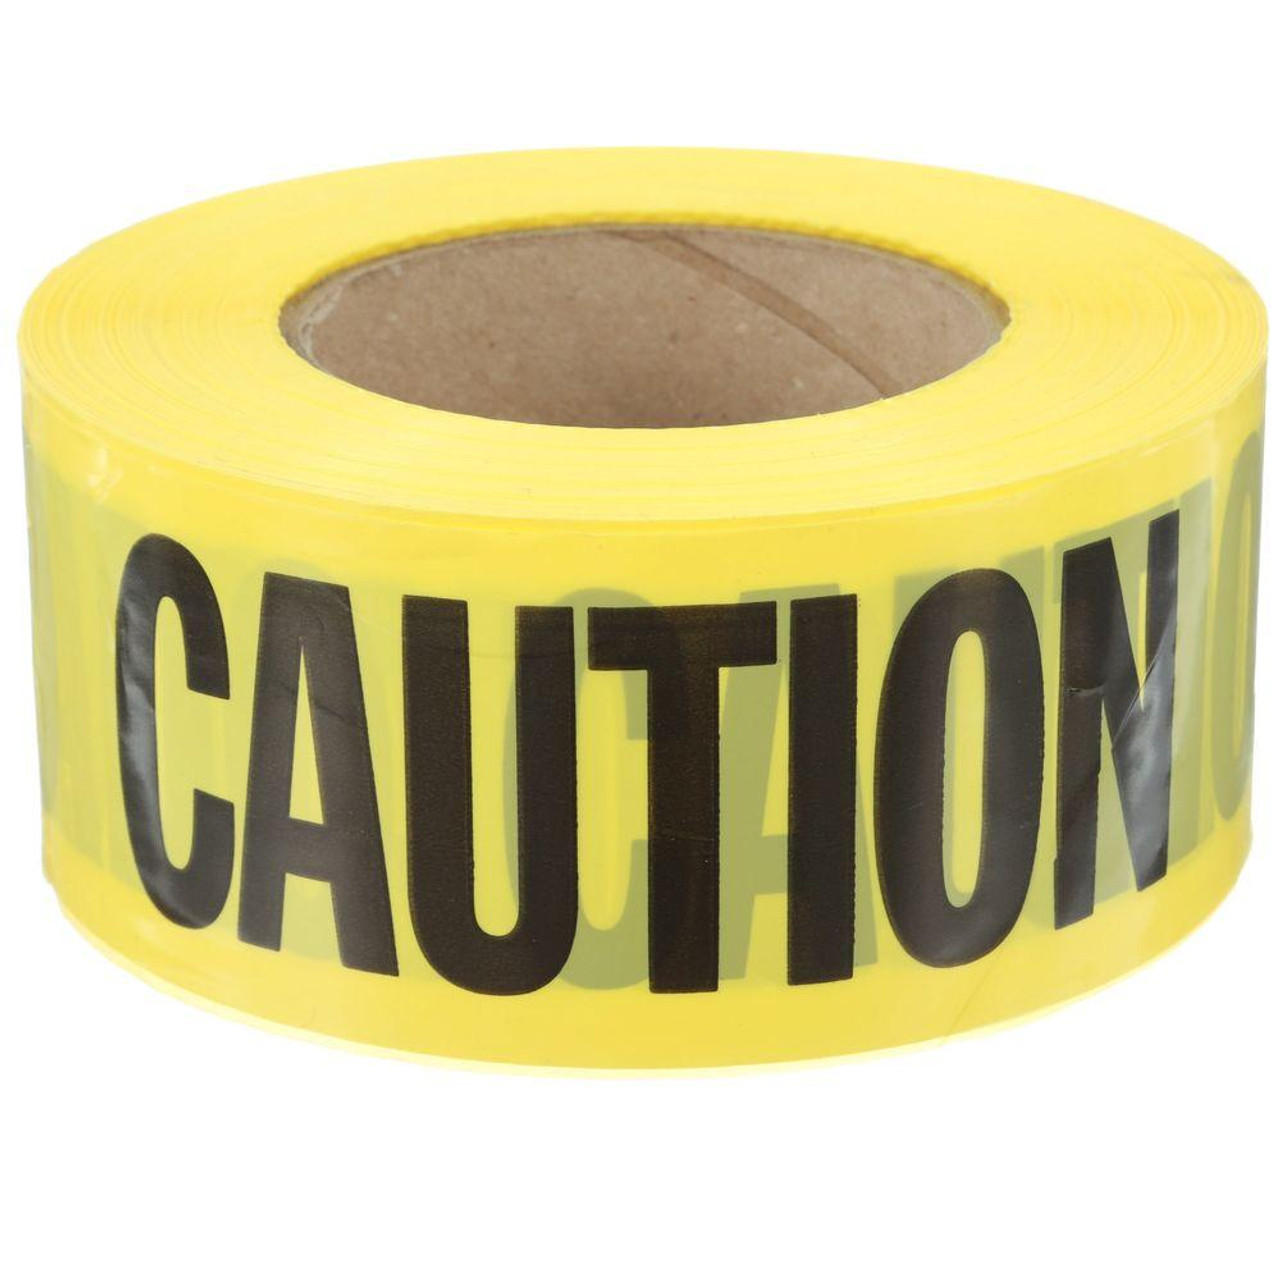 """Caution Cable"" Tape- 3"" x 60 yd."